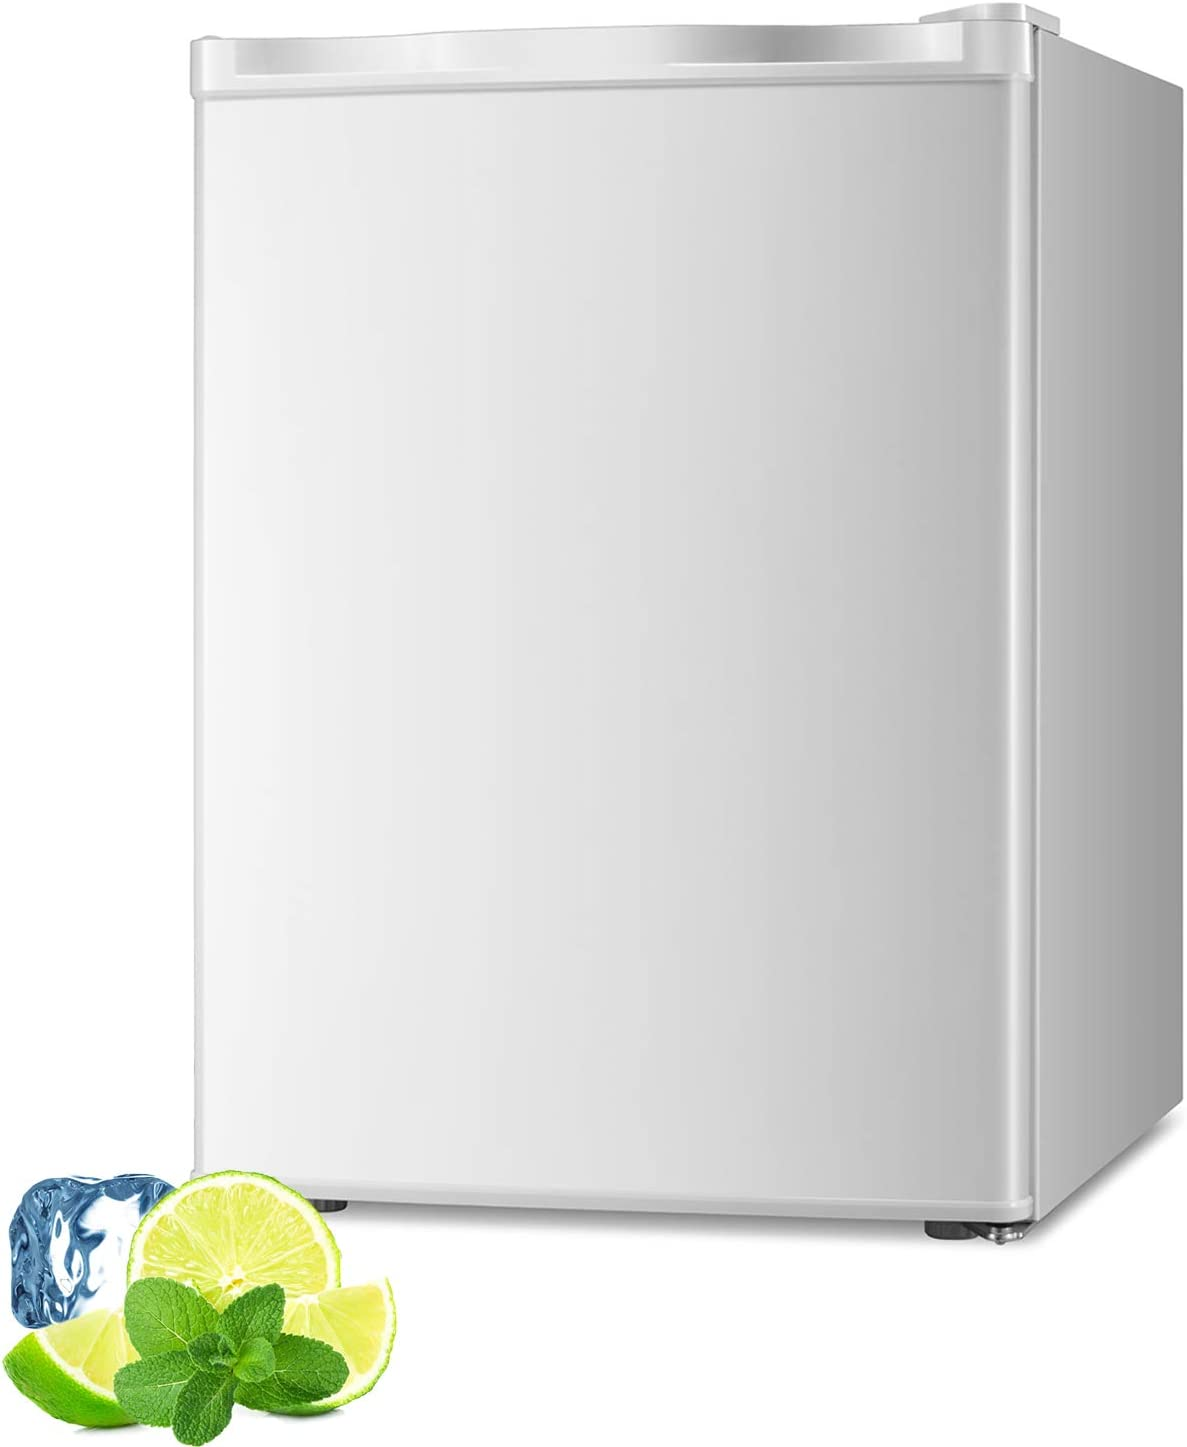 AGLUCKY 2.1 Cu.ft Compact Upright Freezer, Mini Refrigerator with Reversible Single Door and Removable Glass Shelves, Beverage and Food Storage Cooler for Office, Dormitory, Home or Apartment(White)